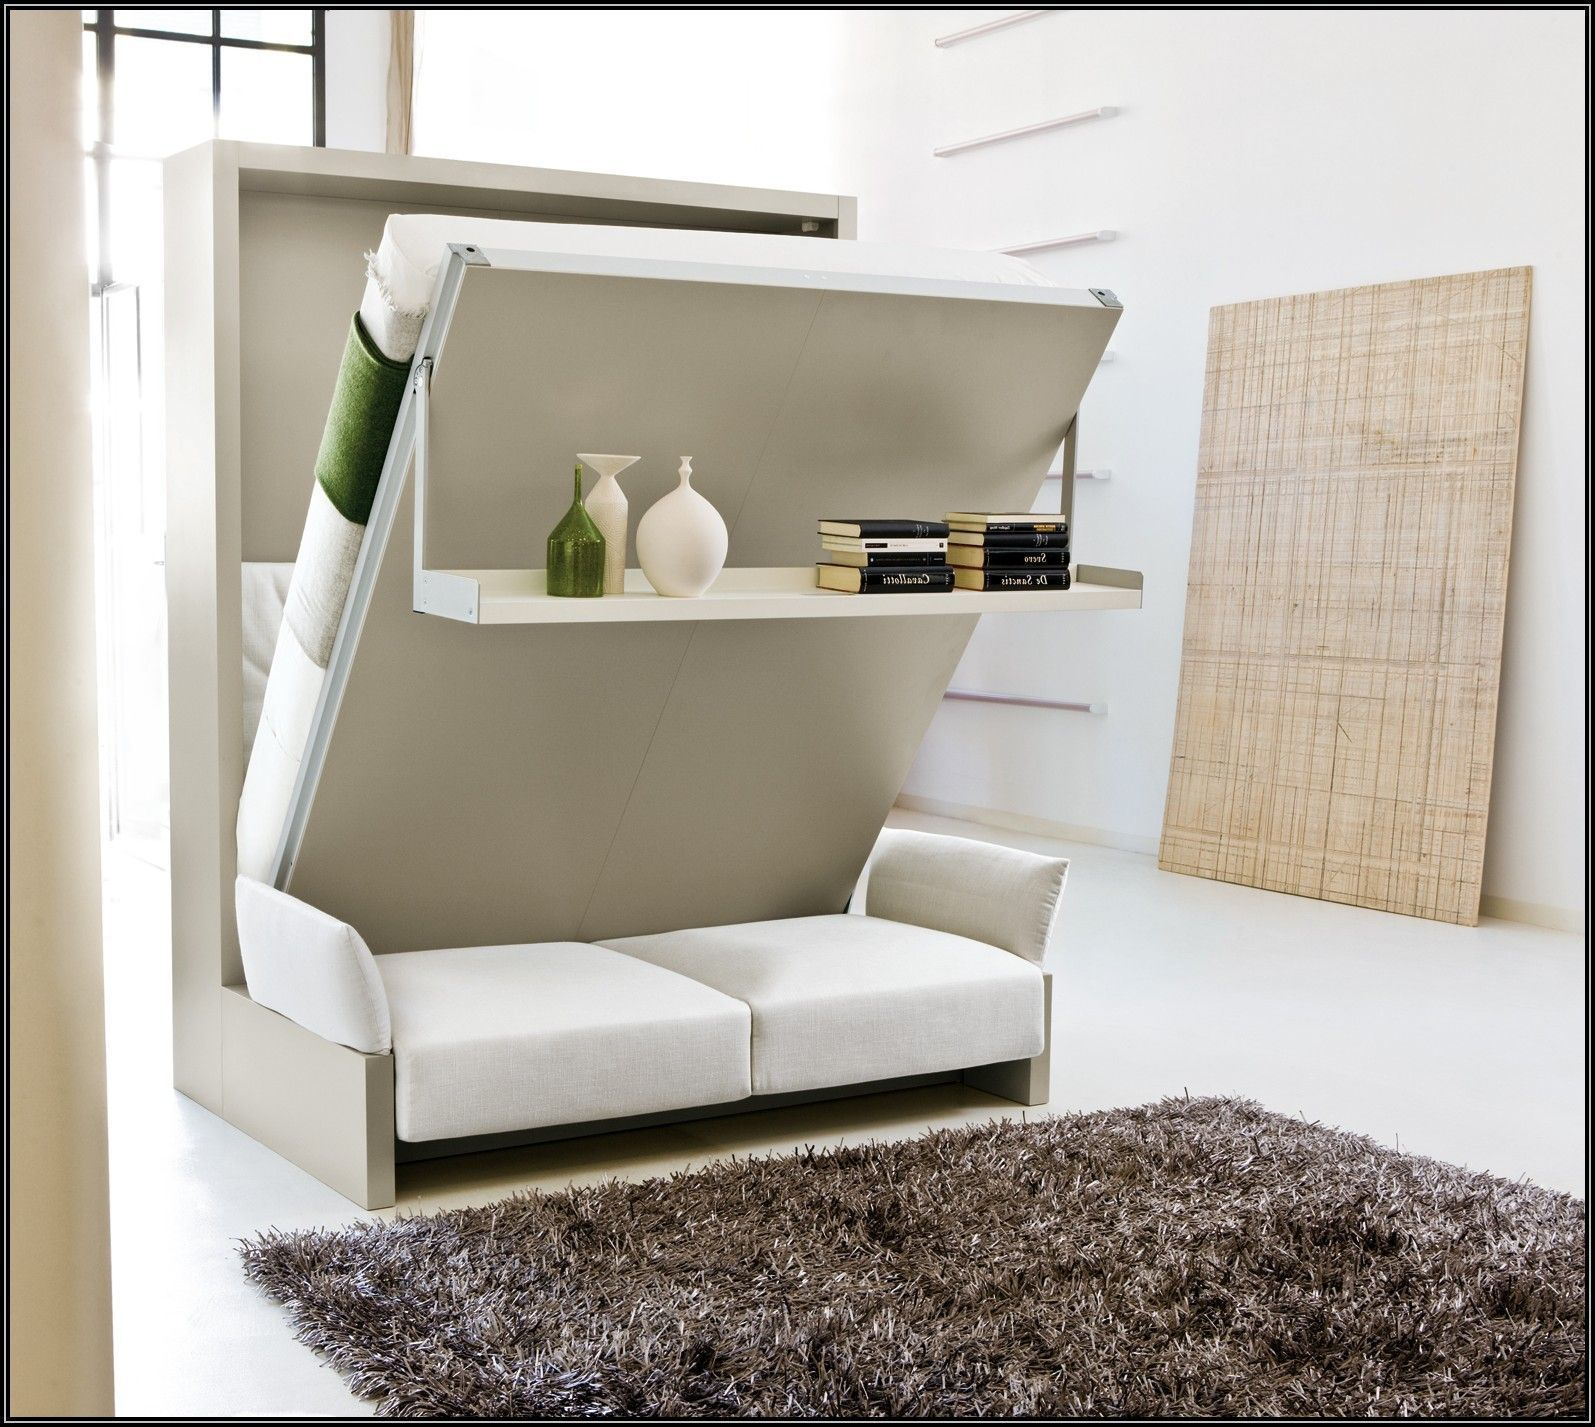 Save Small Space In A Bedroom Using Murphy Bed Ikea Outstanding Murphy Bed Ikea With Convertible Sofa A Murphy Bed Ikea Murphy Bed Couch Convertible Furniture